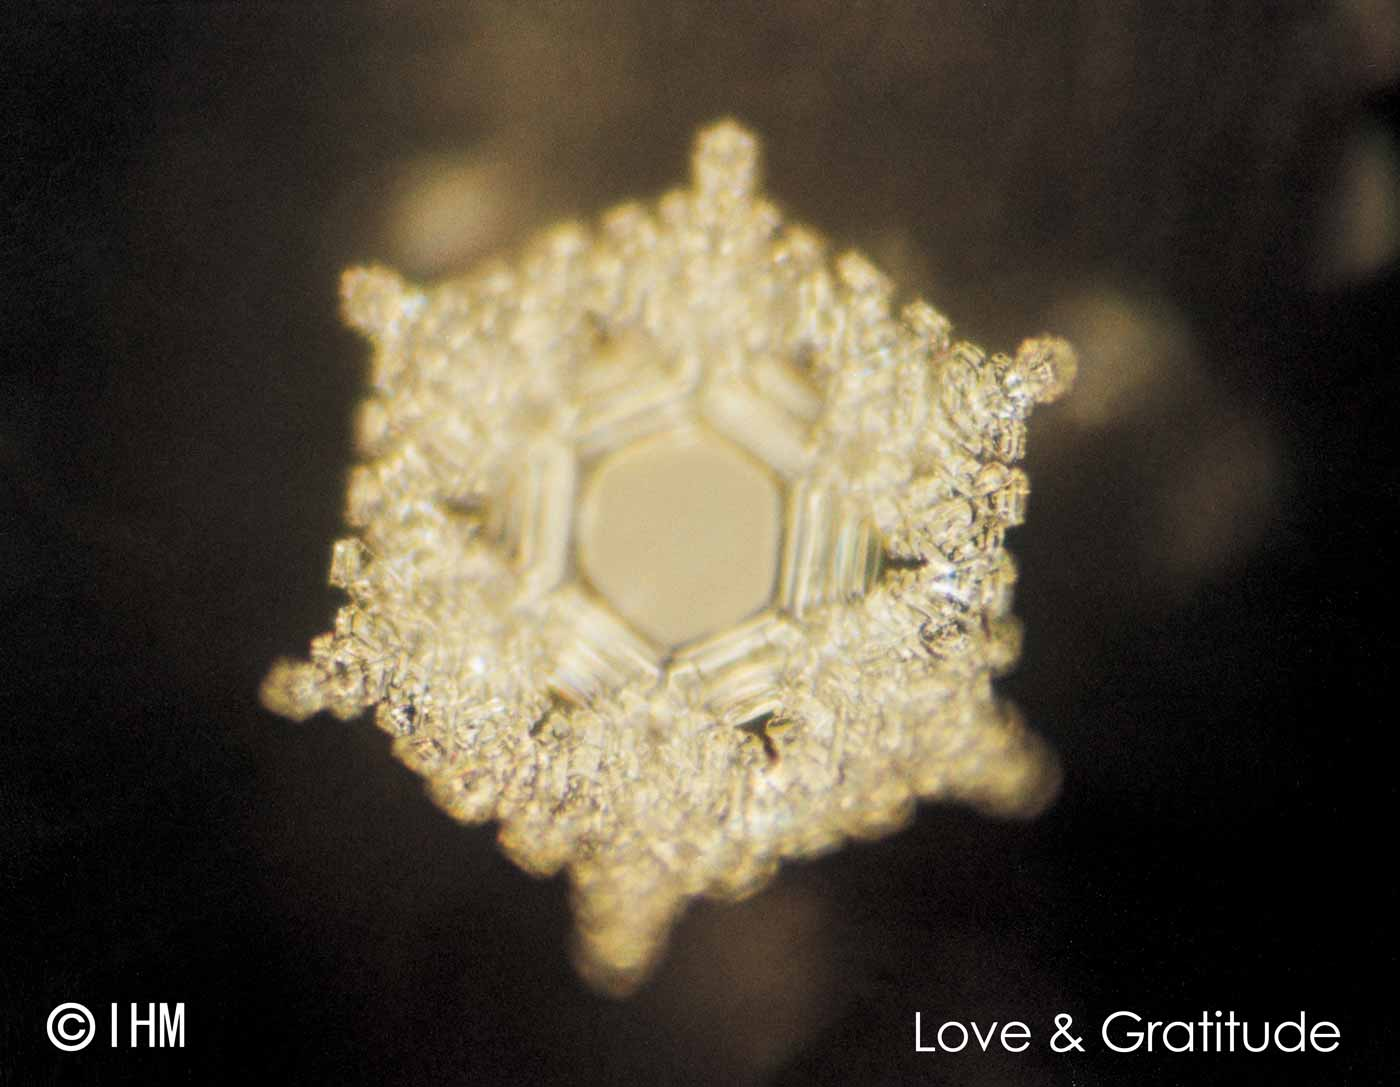 Emoto's water crystals photo of the words 'love and gratitude'